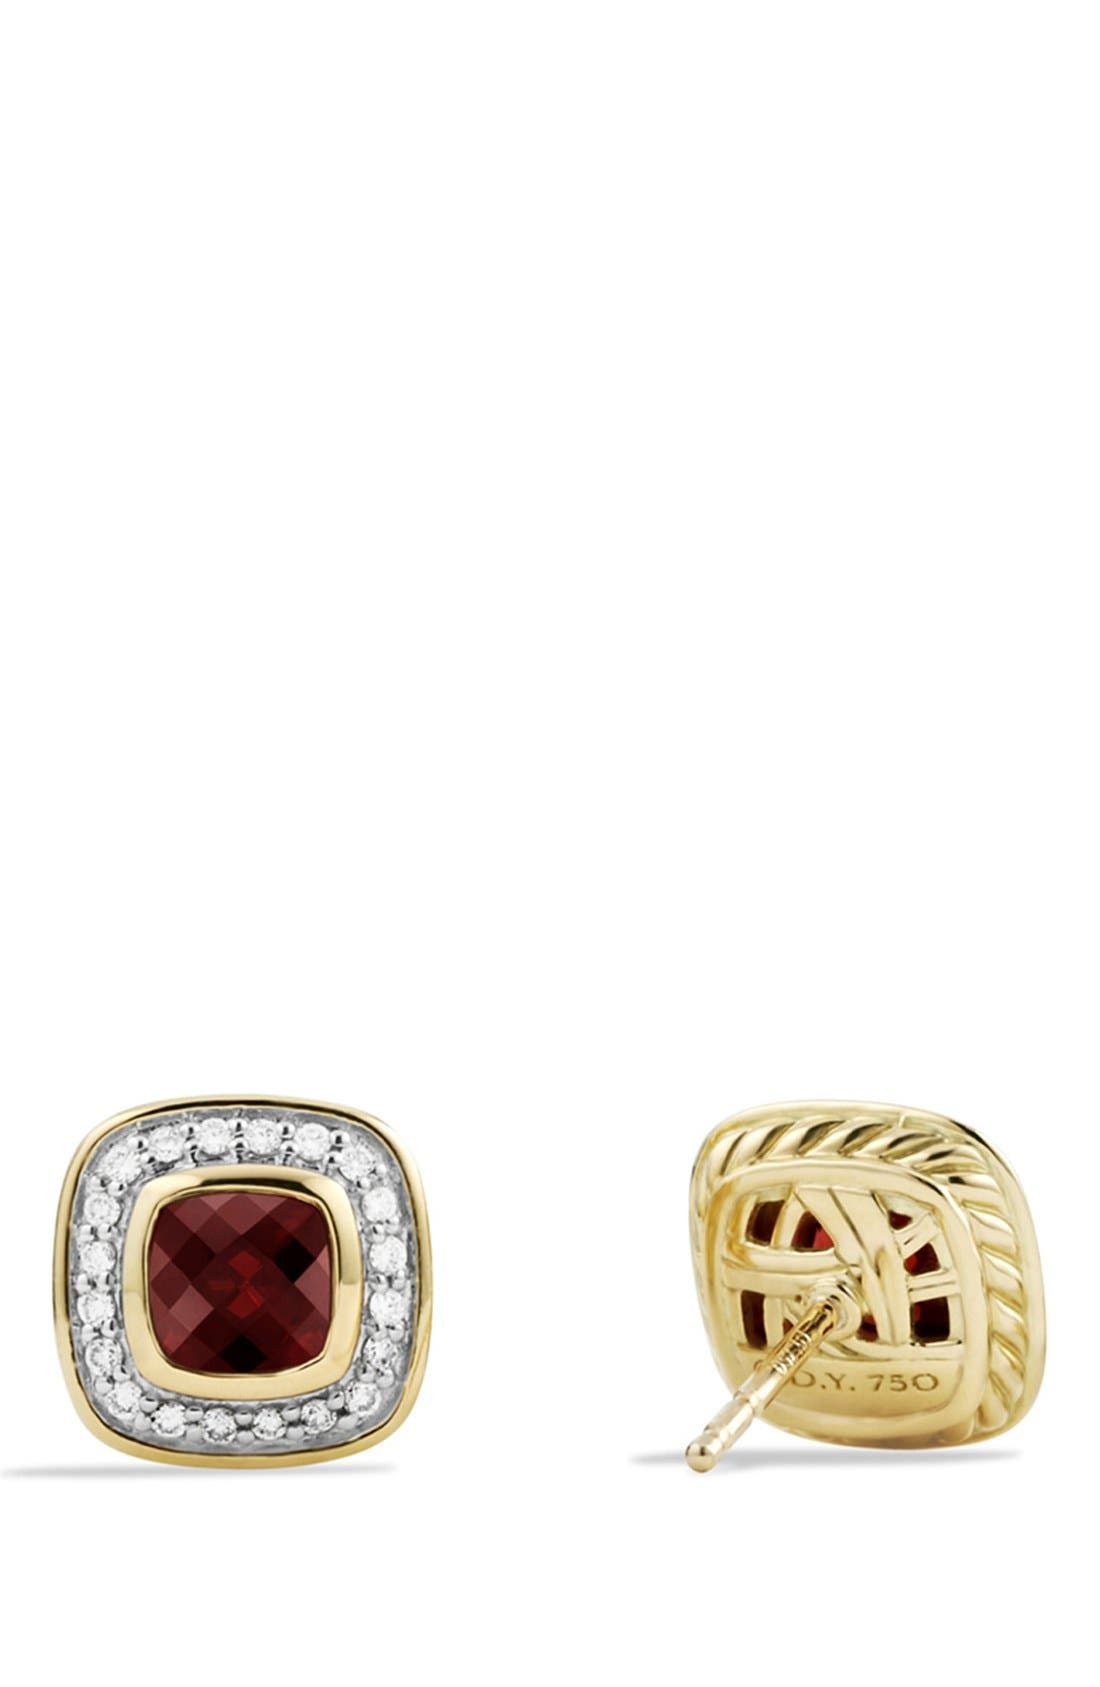 'Petite Albion' Earrings with Garnet and Diamonds,                             Alternate thumbnail 2, color,                             601